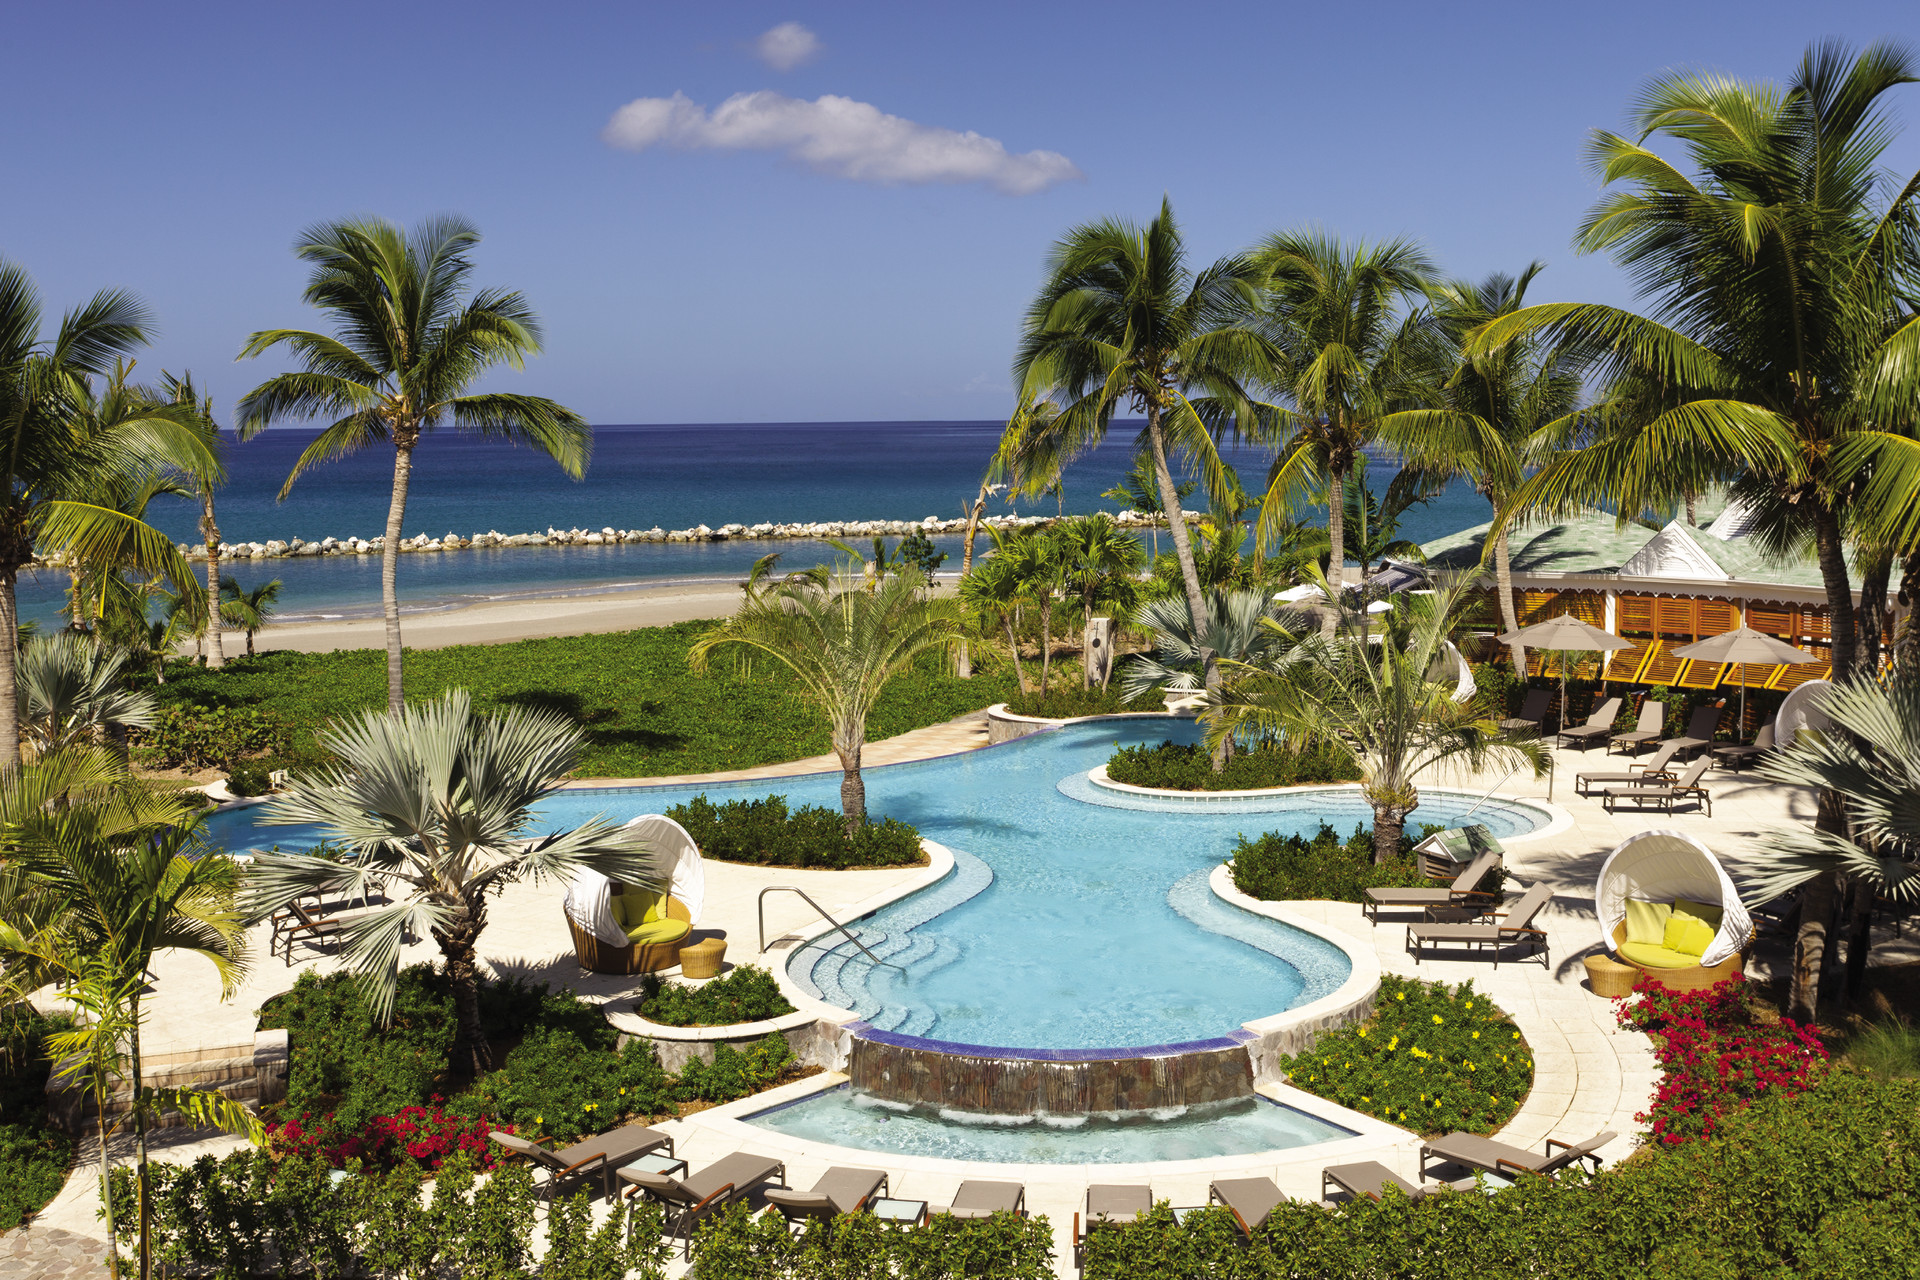 GardenPool NEV 334 Lap in Luxury: Best Pools in the Caribbean